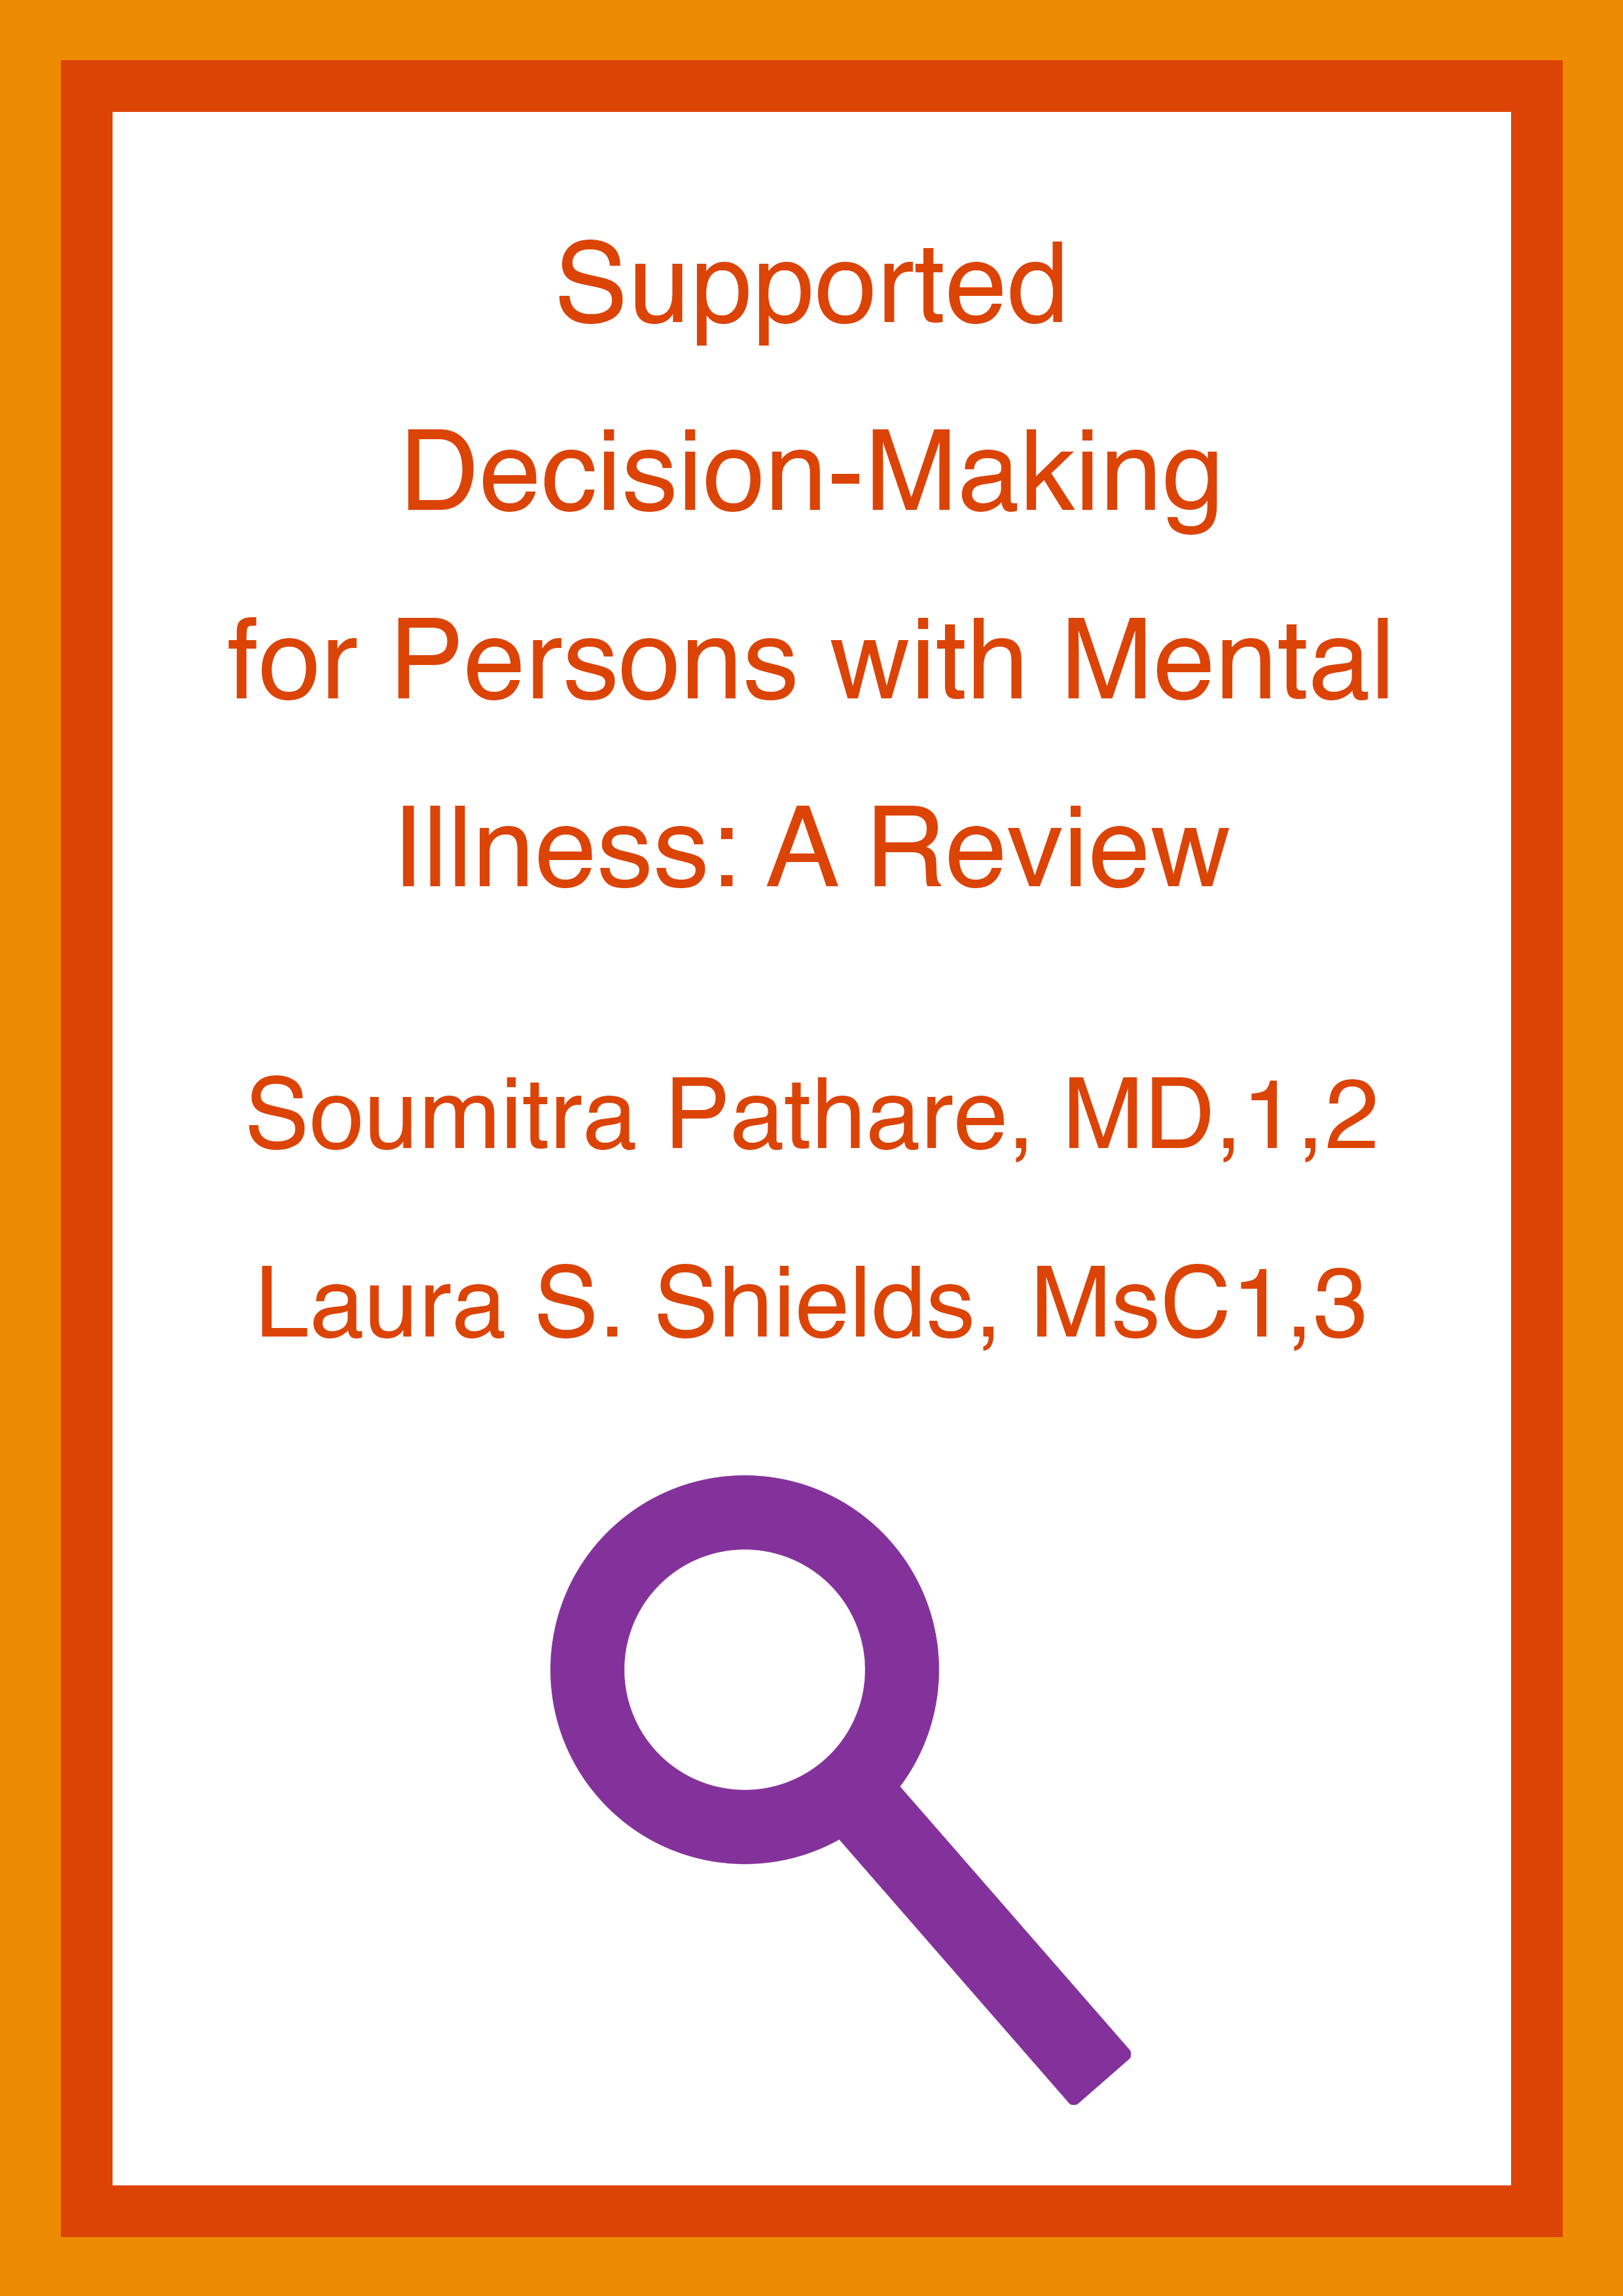 Cover art for: Supported Decision-Making for Persons with Mental Illness: A Review